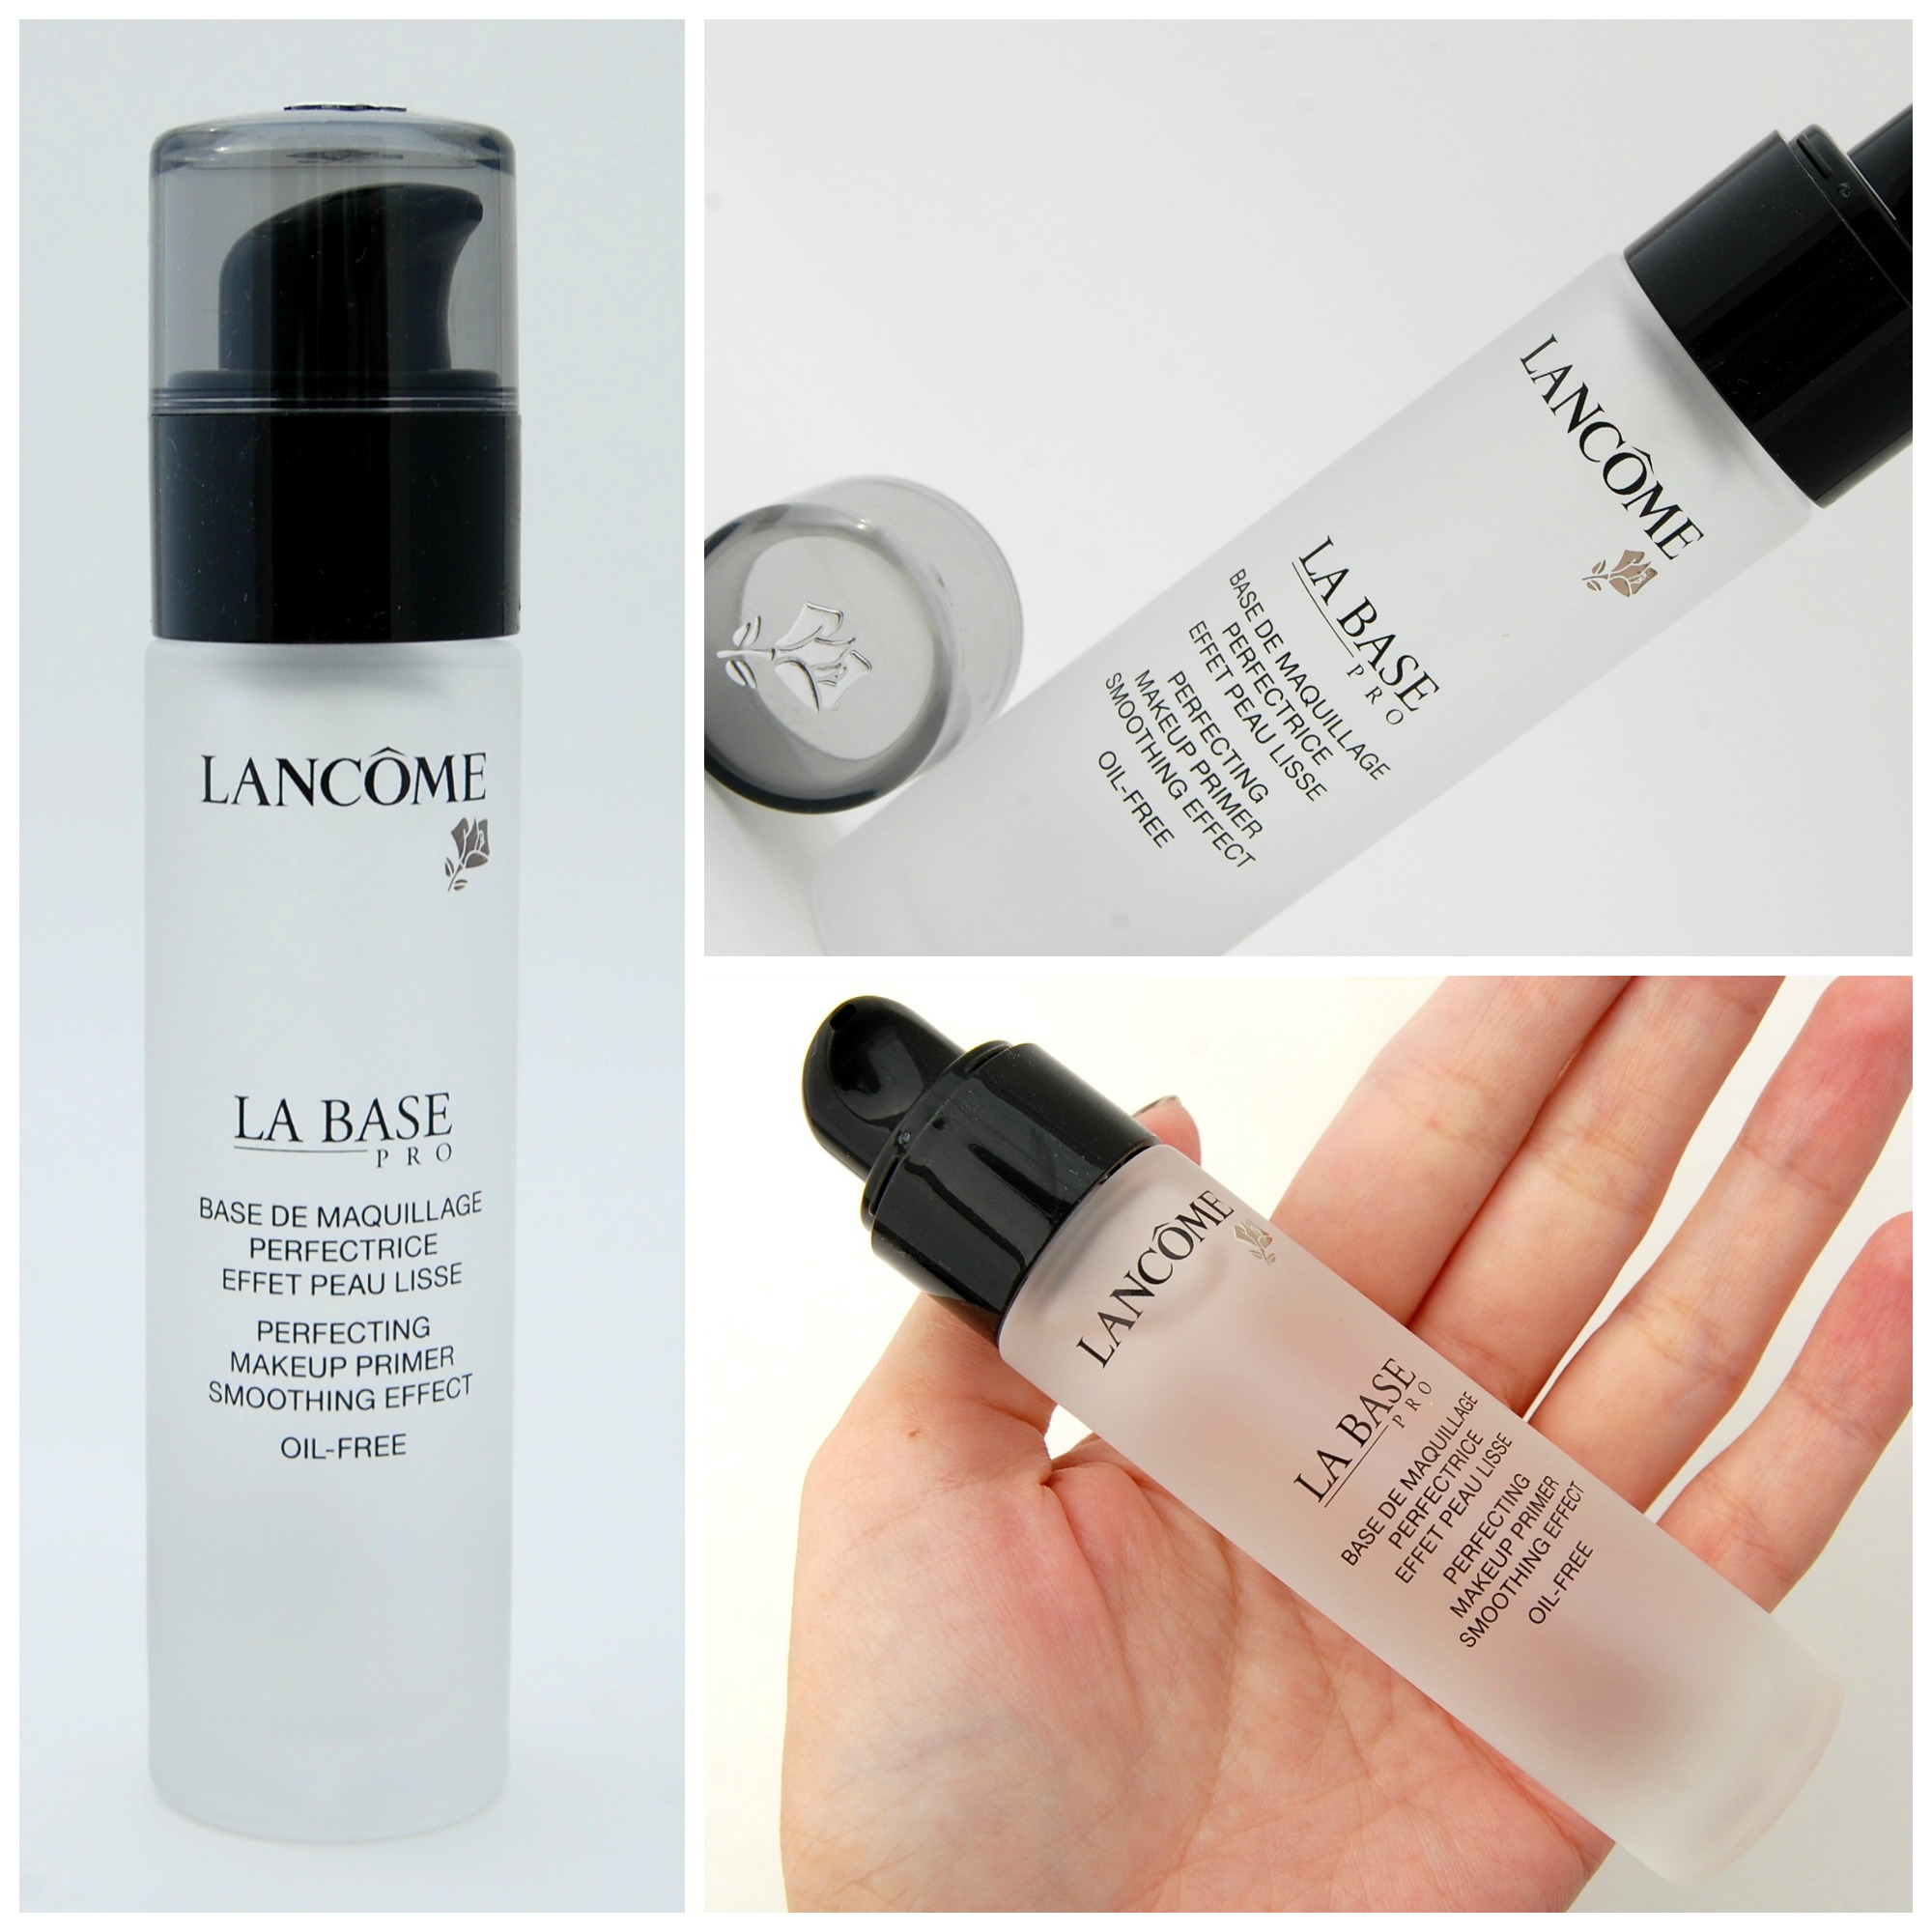 La Base Pro Perfecting Makeup Primer by Lancôme #4